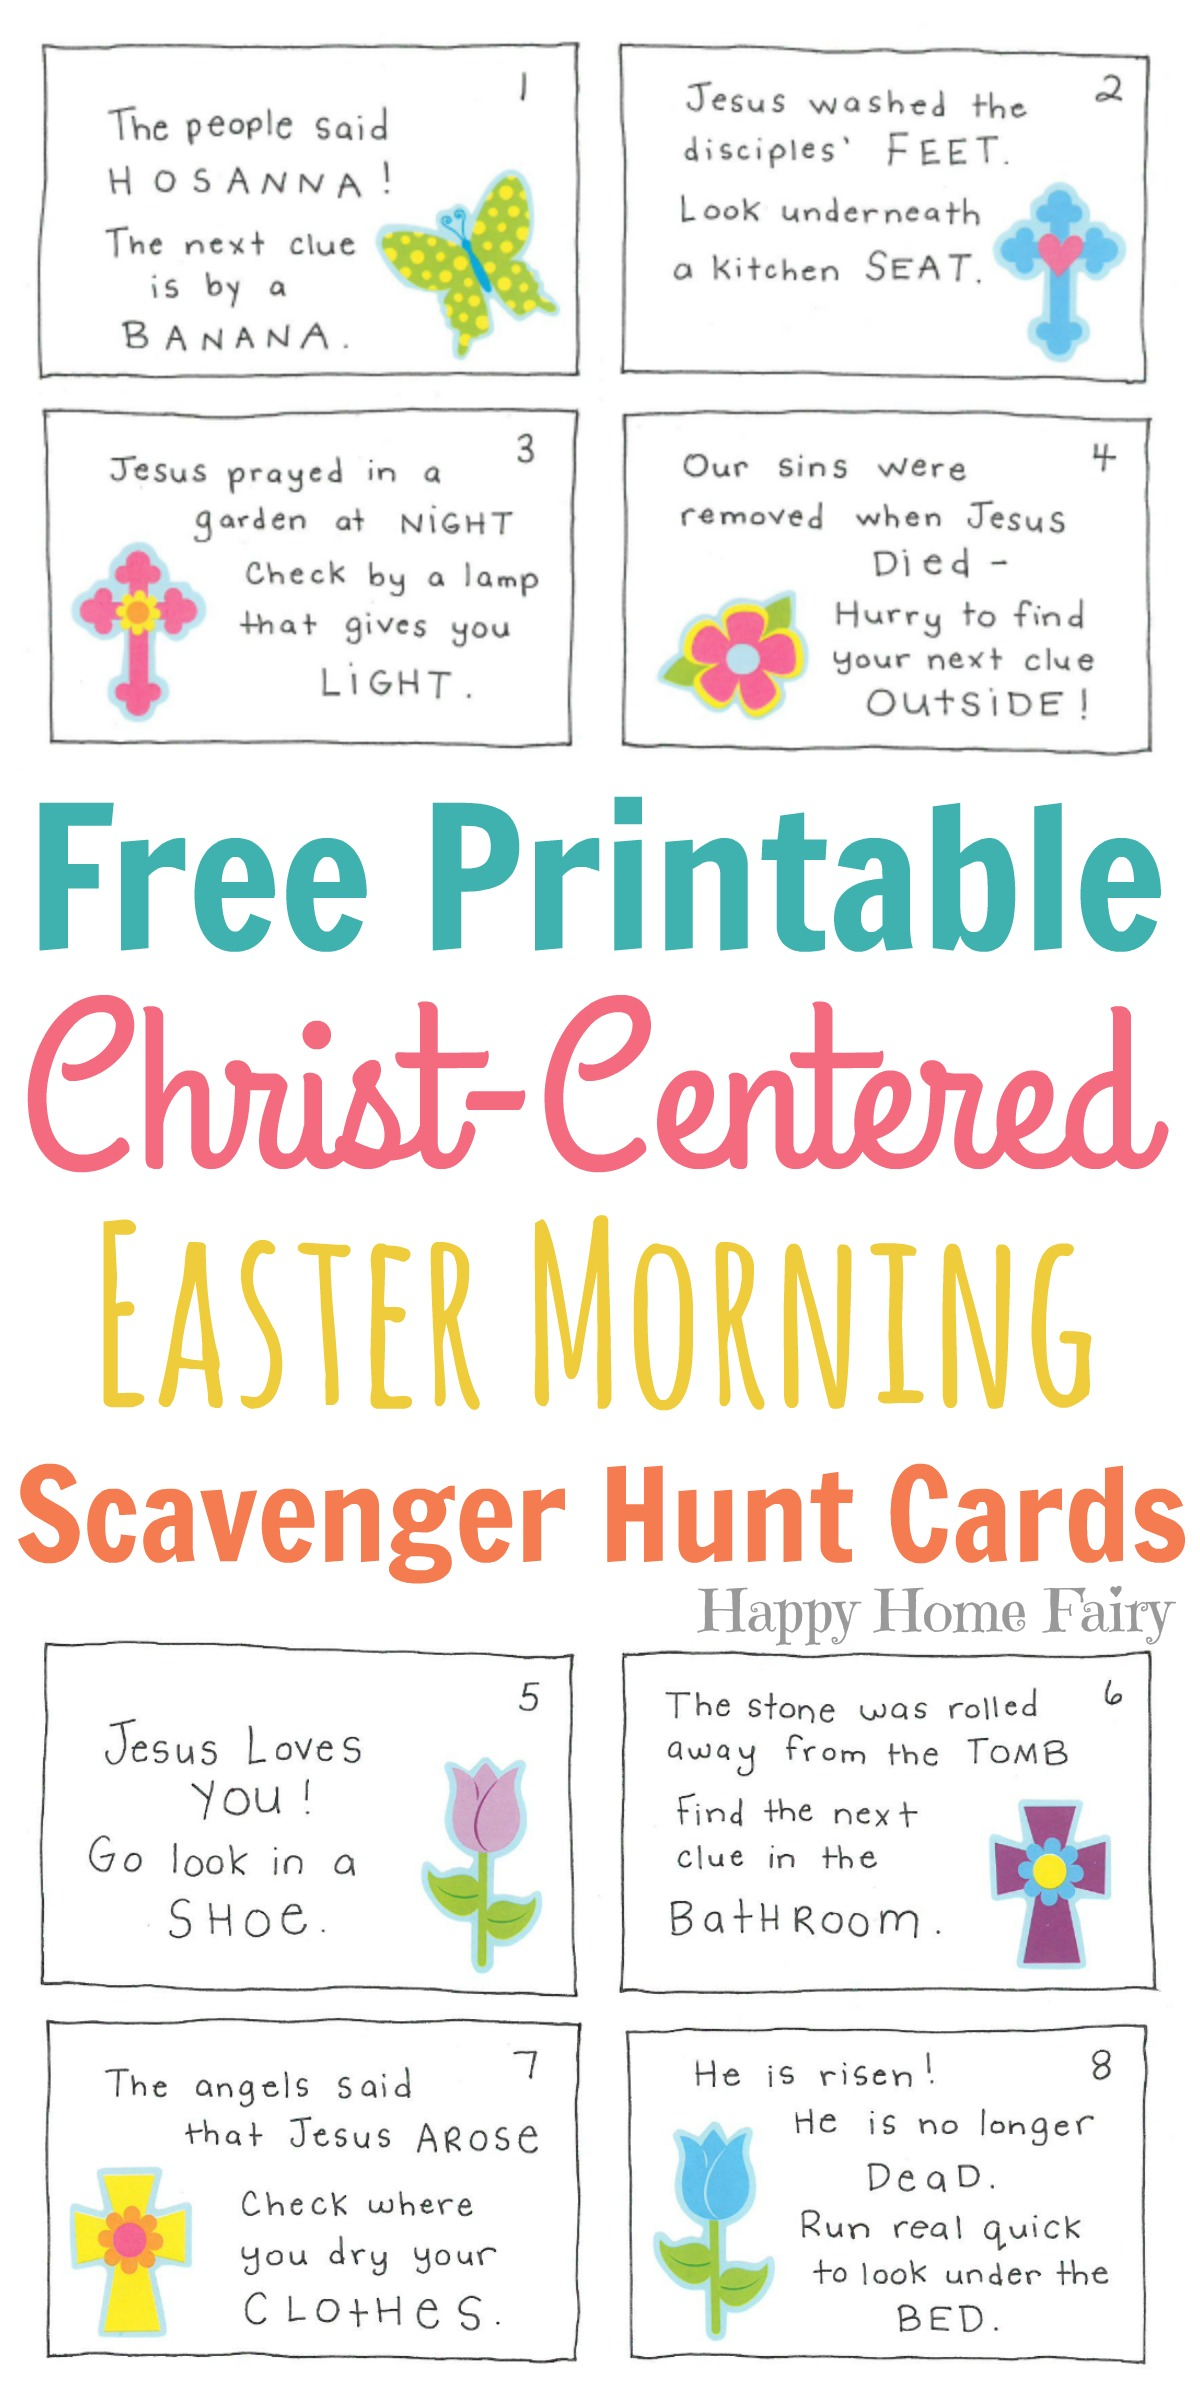 Easter archives happy home fairy christ centered easter morning scavenger hunt for preschoolers free printable negle Image collections